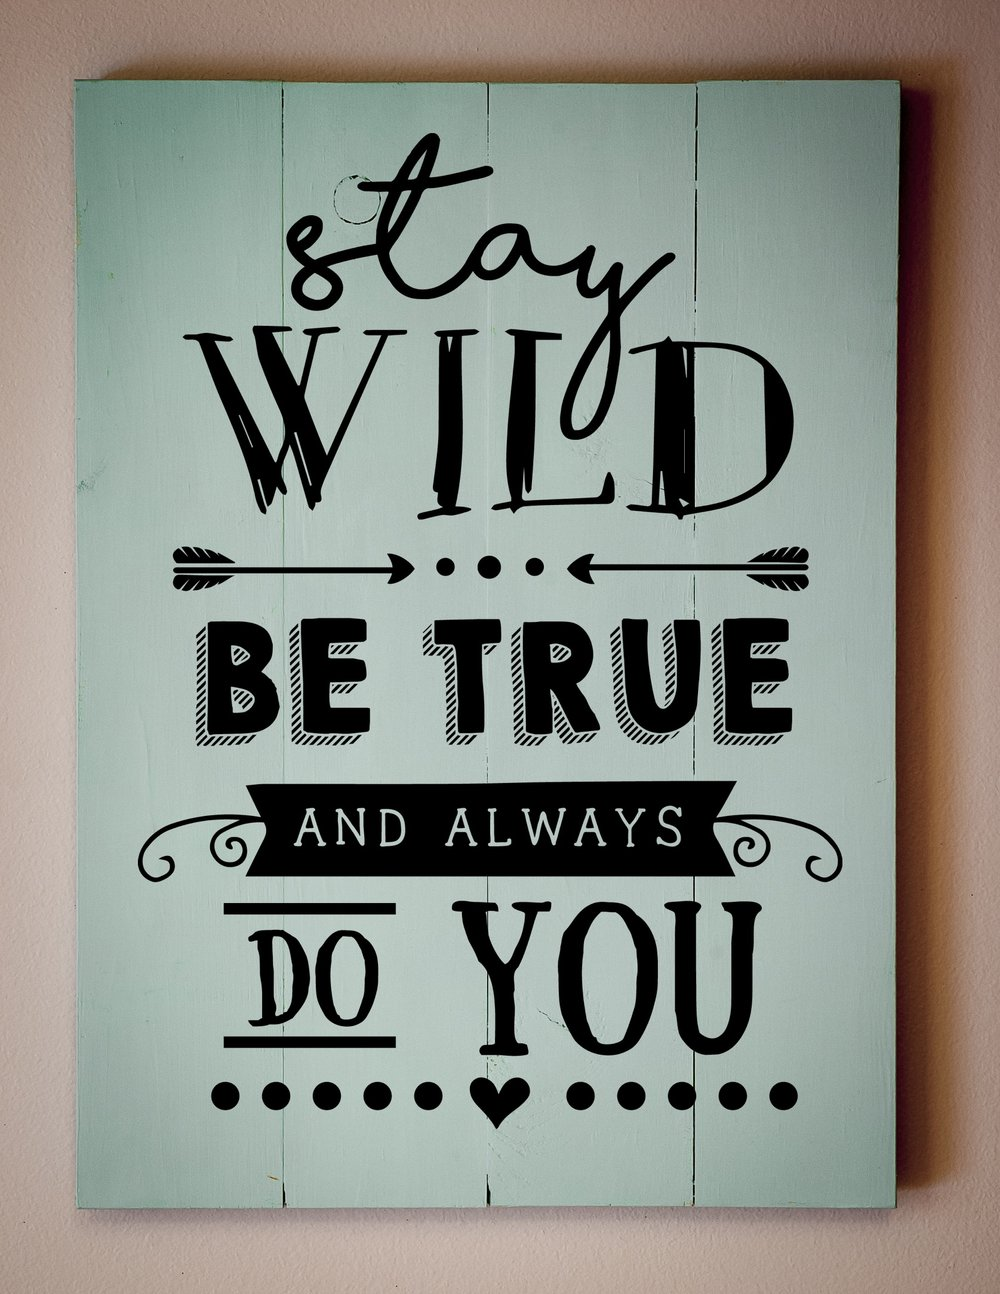 Stay wild be true..